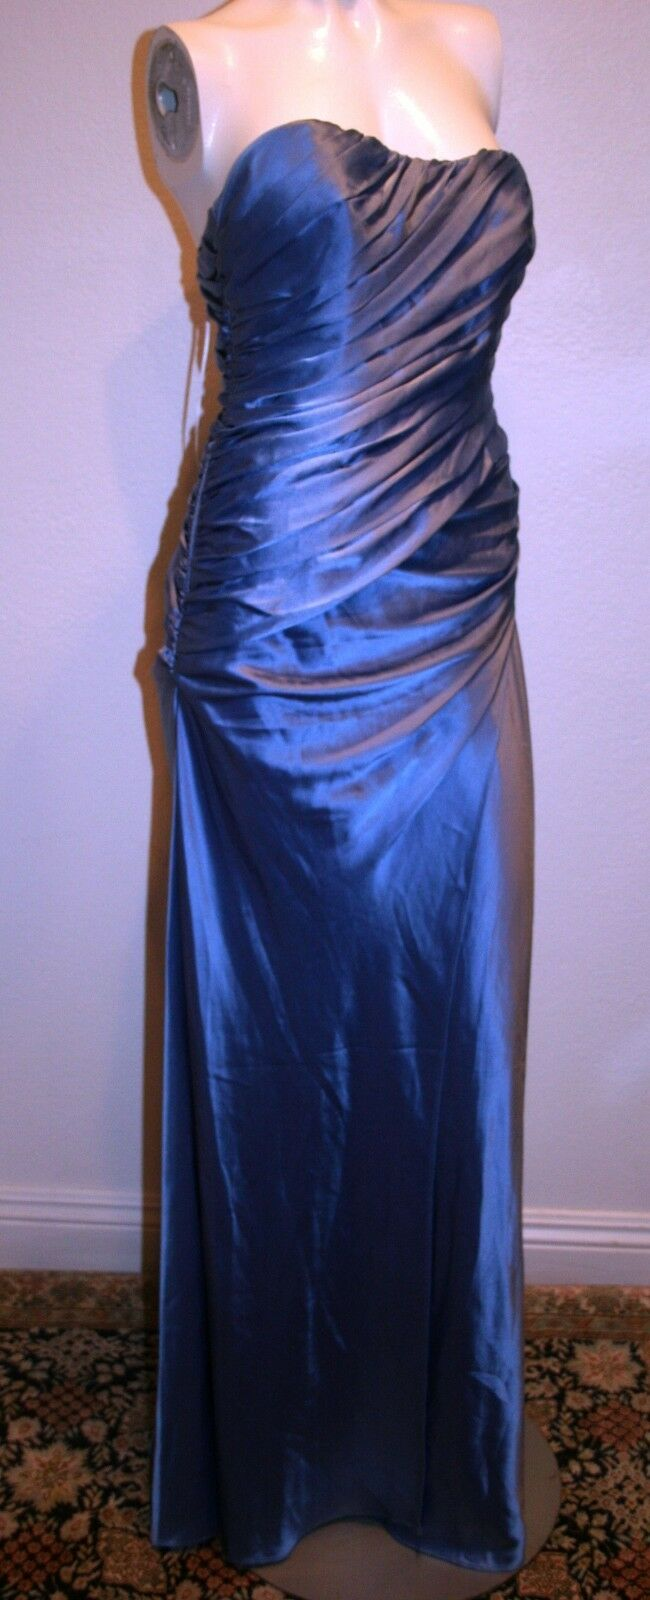 398 ABS COLLECTION FORMAL EVENING DRESS blueE STRAPLESS  EMBELLISHED PLEATS SZ 6